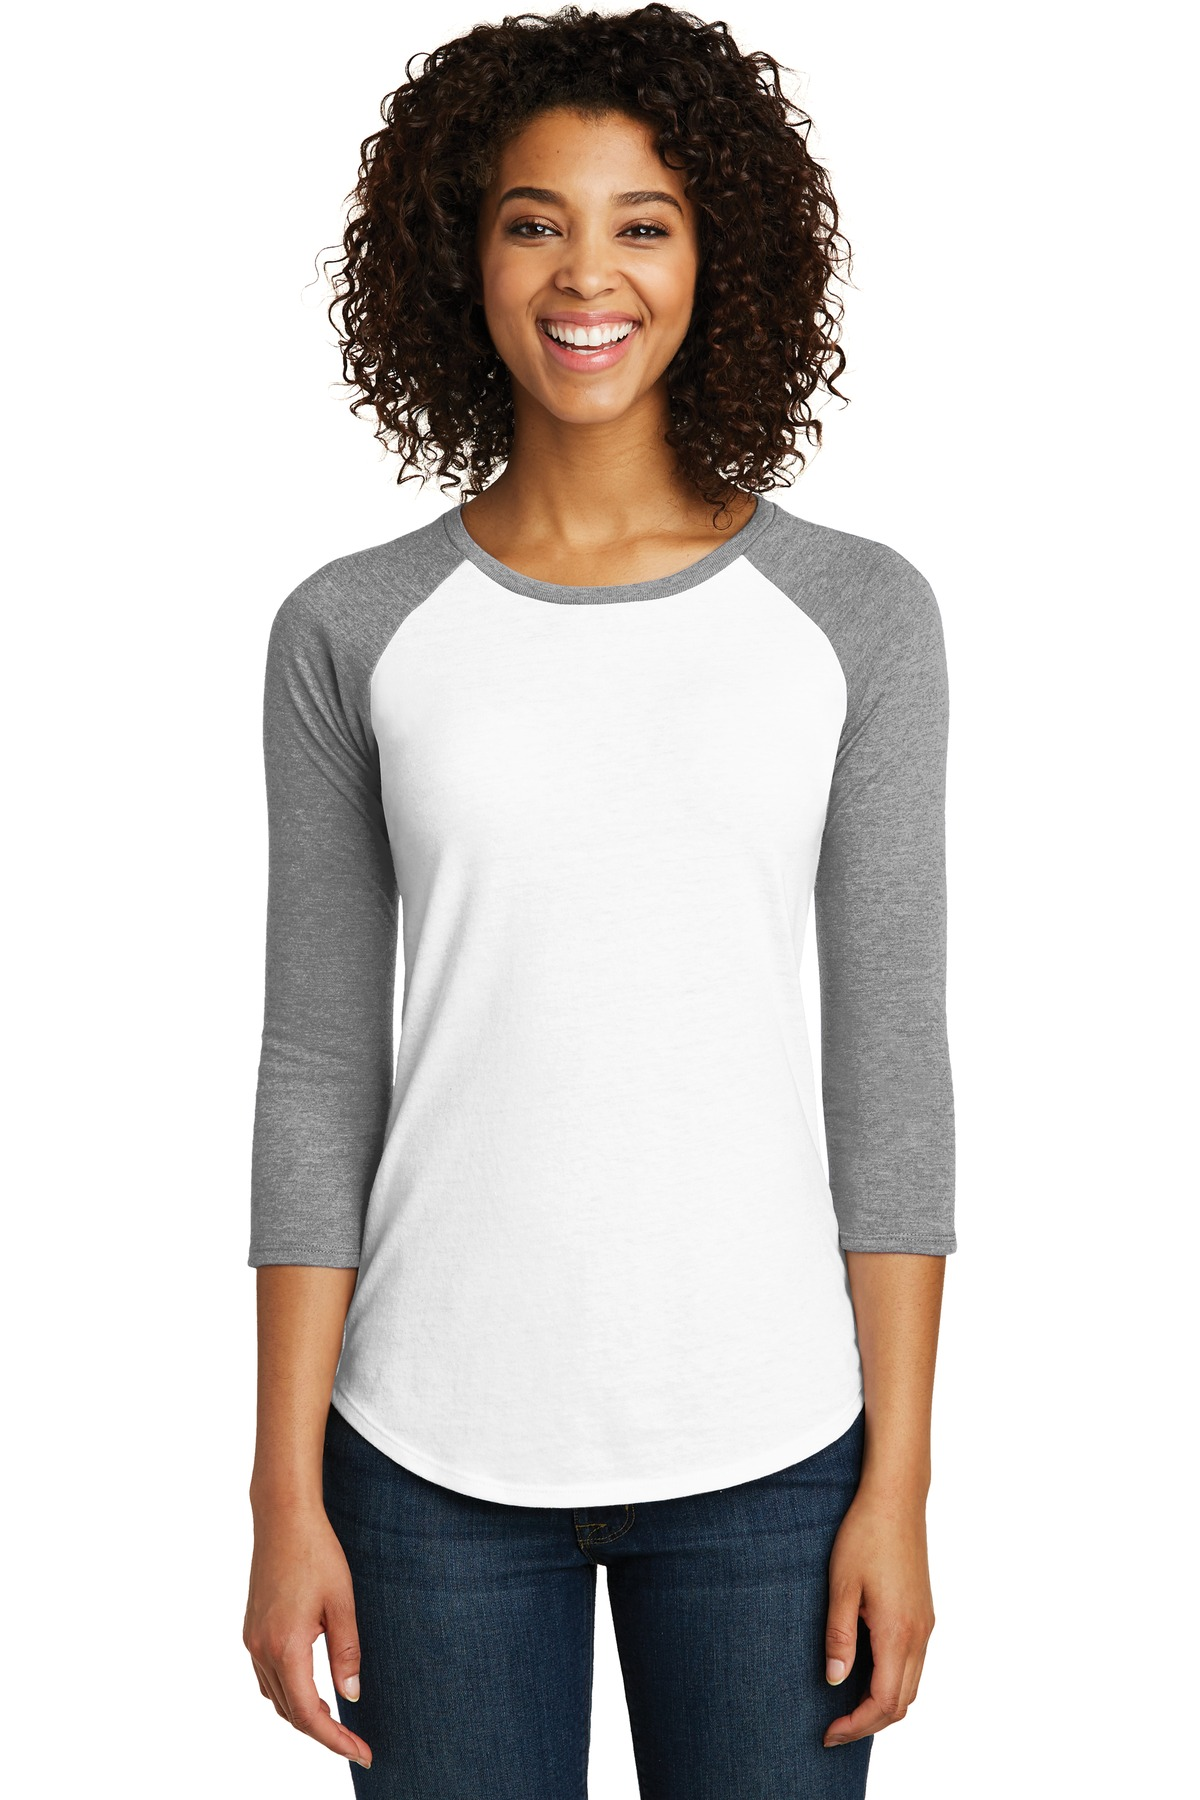 District ®  Women's Fitted Very Important Tee ®  3/4-Sleeve Raglan. DT6211 - Light Heather Grey/ White